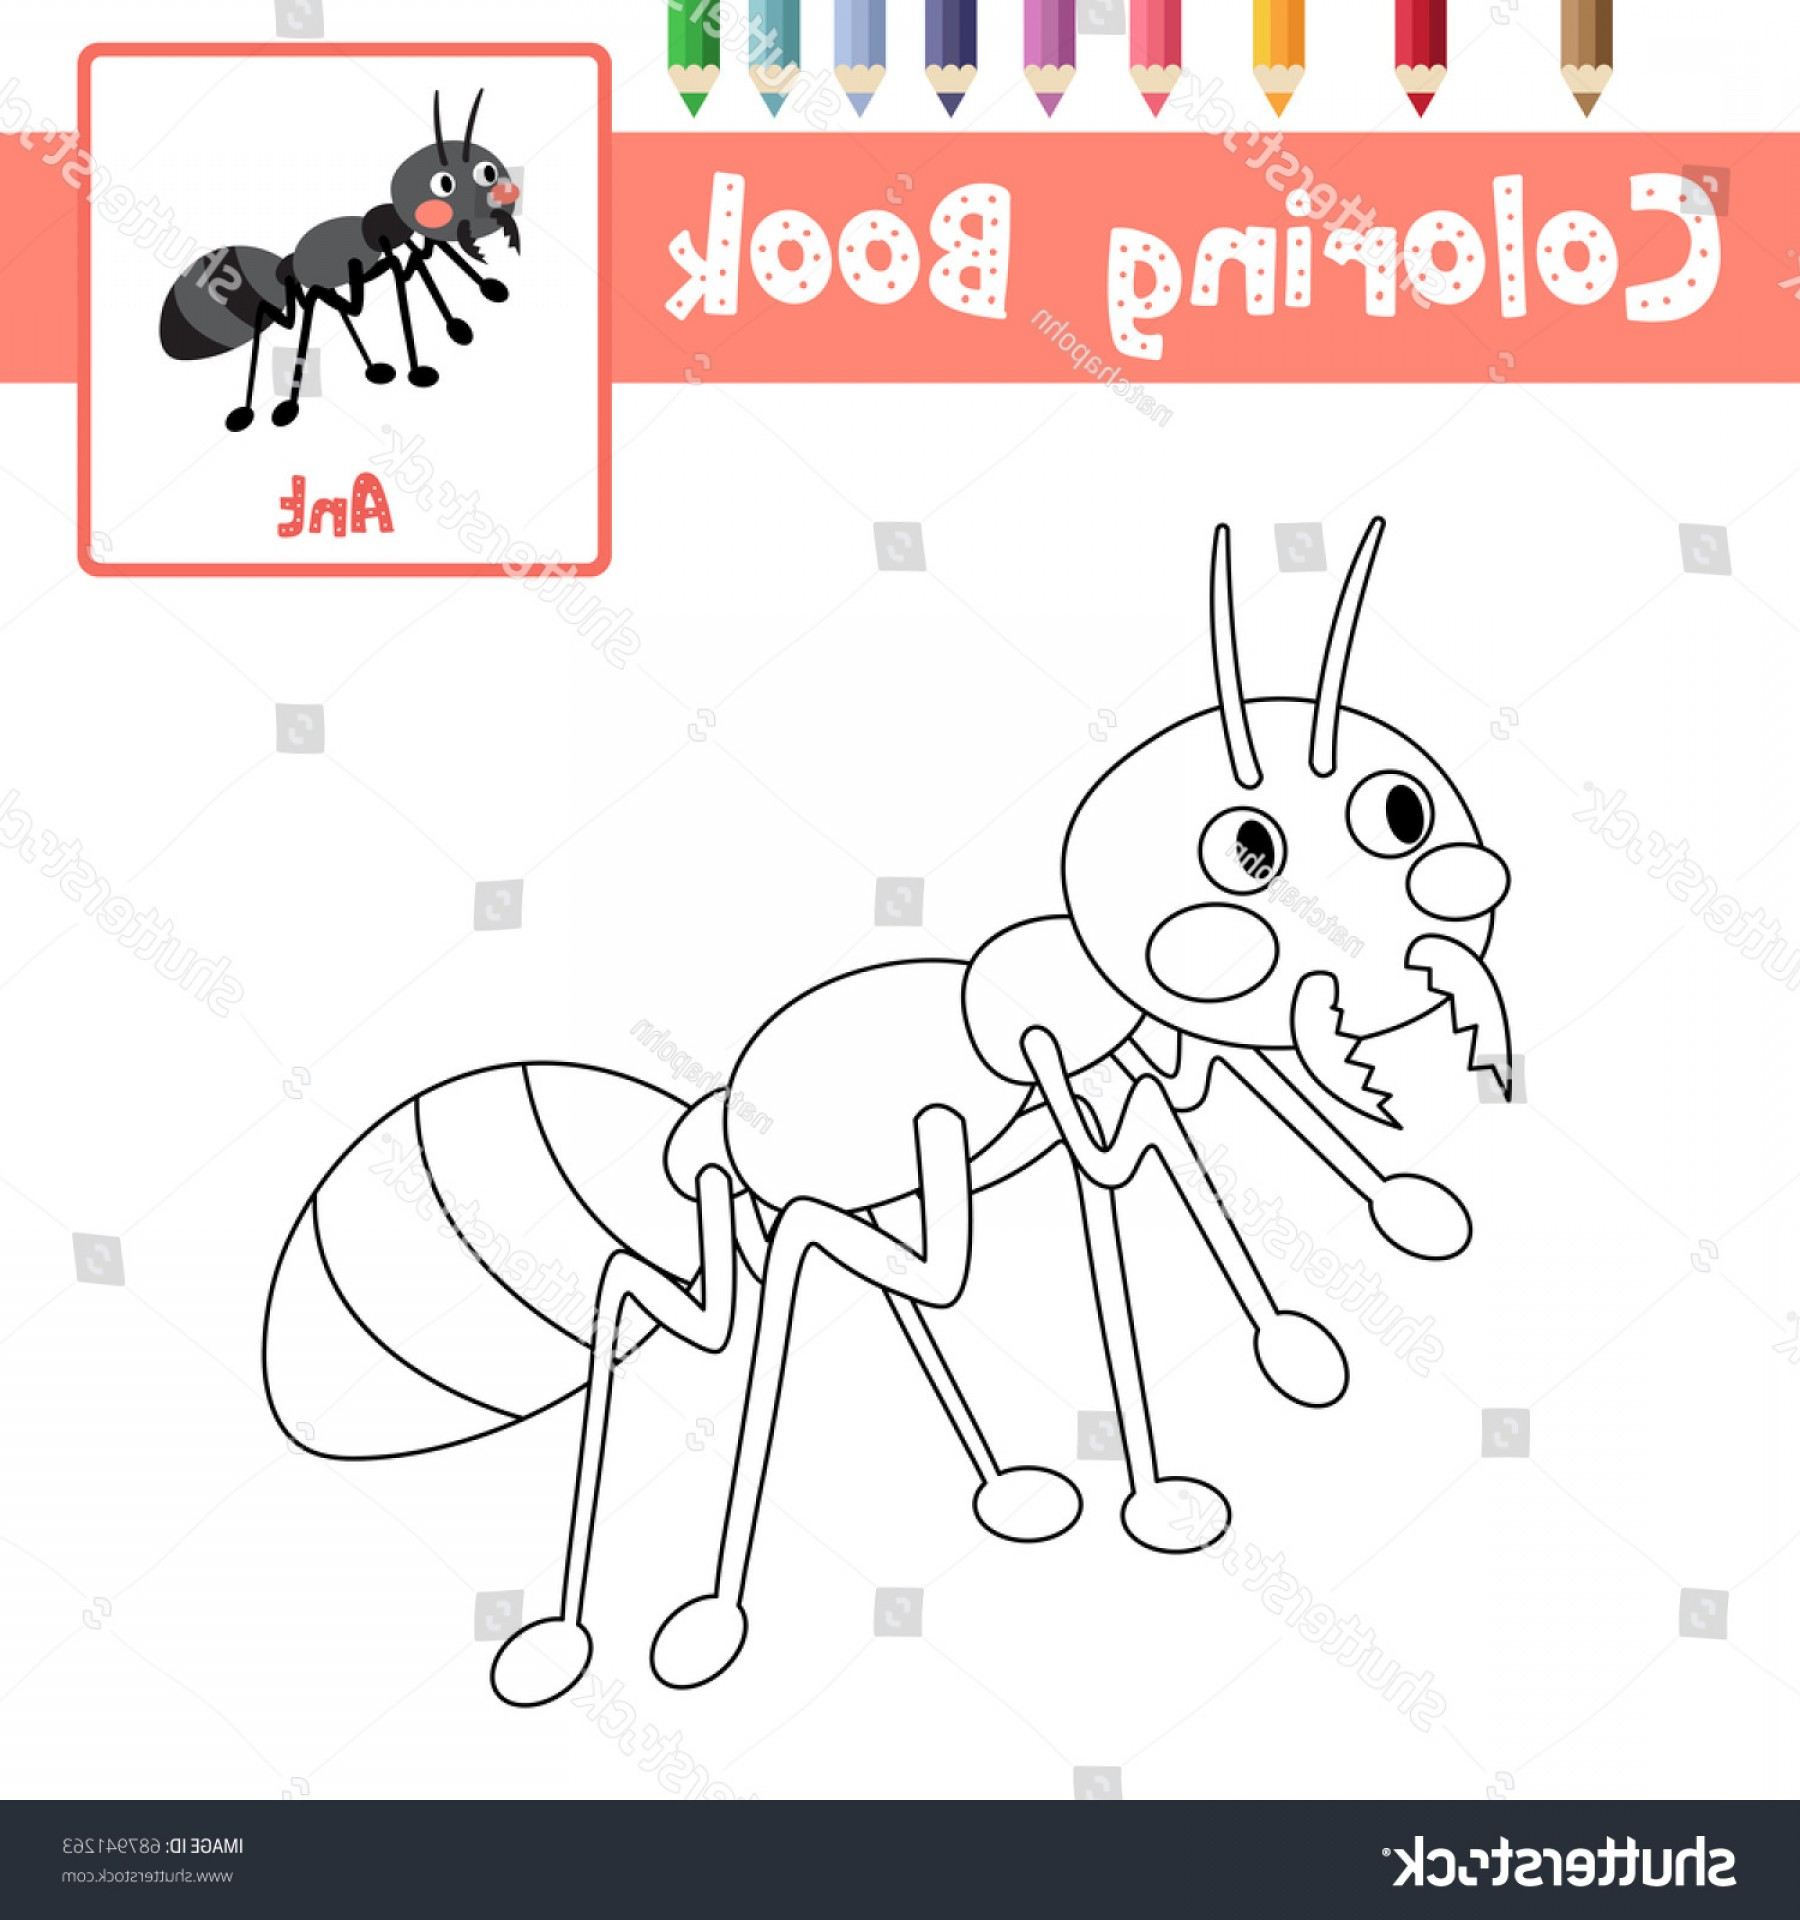 Mosquito Vector Worksheet: Coloring Page Black Ants Animals Preschool